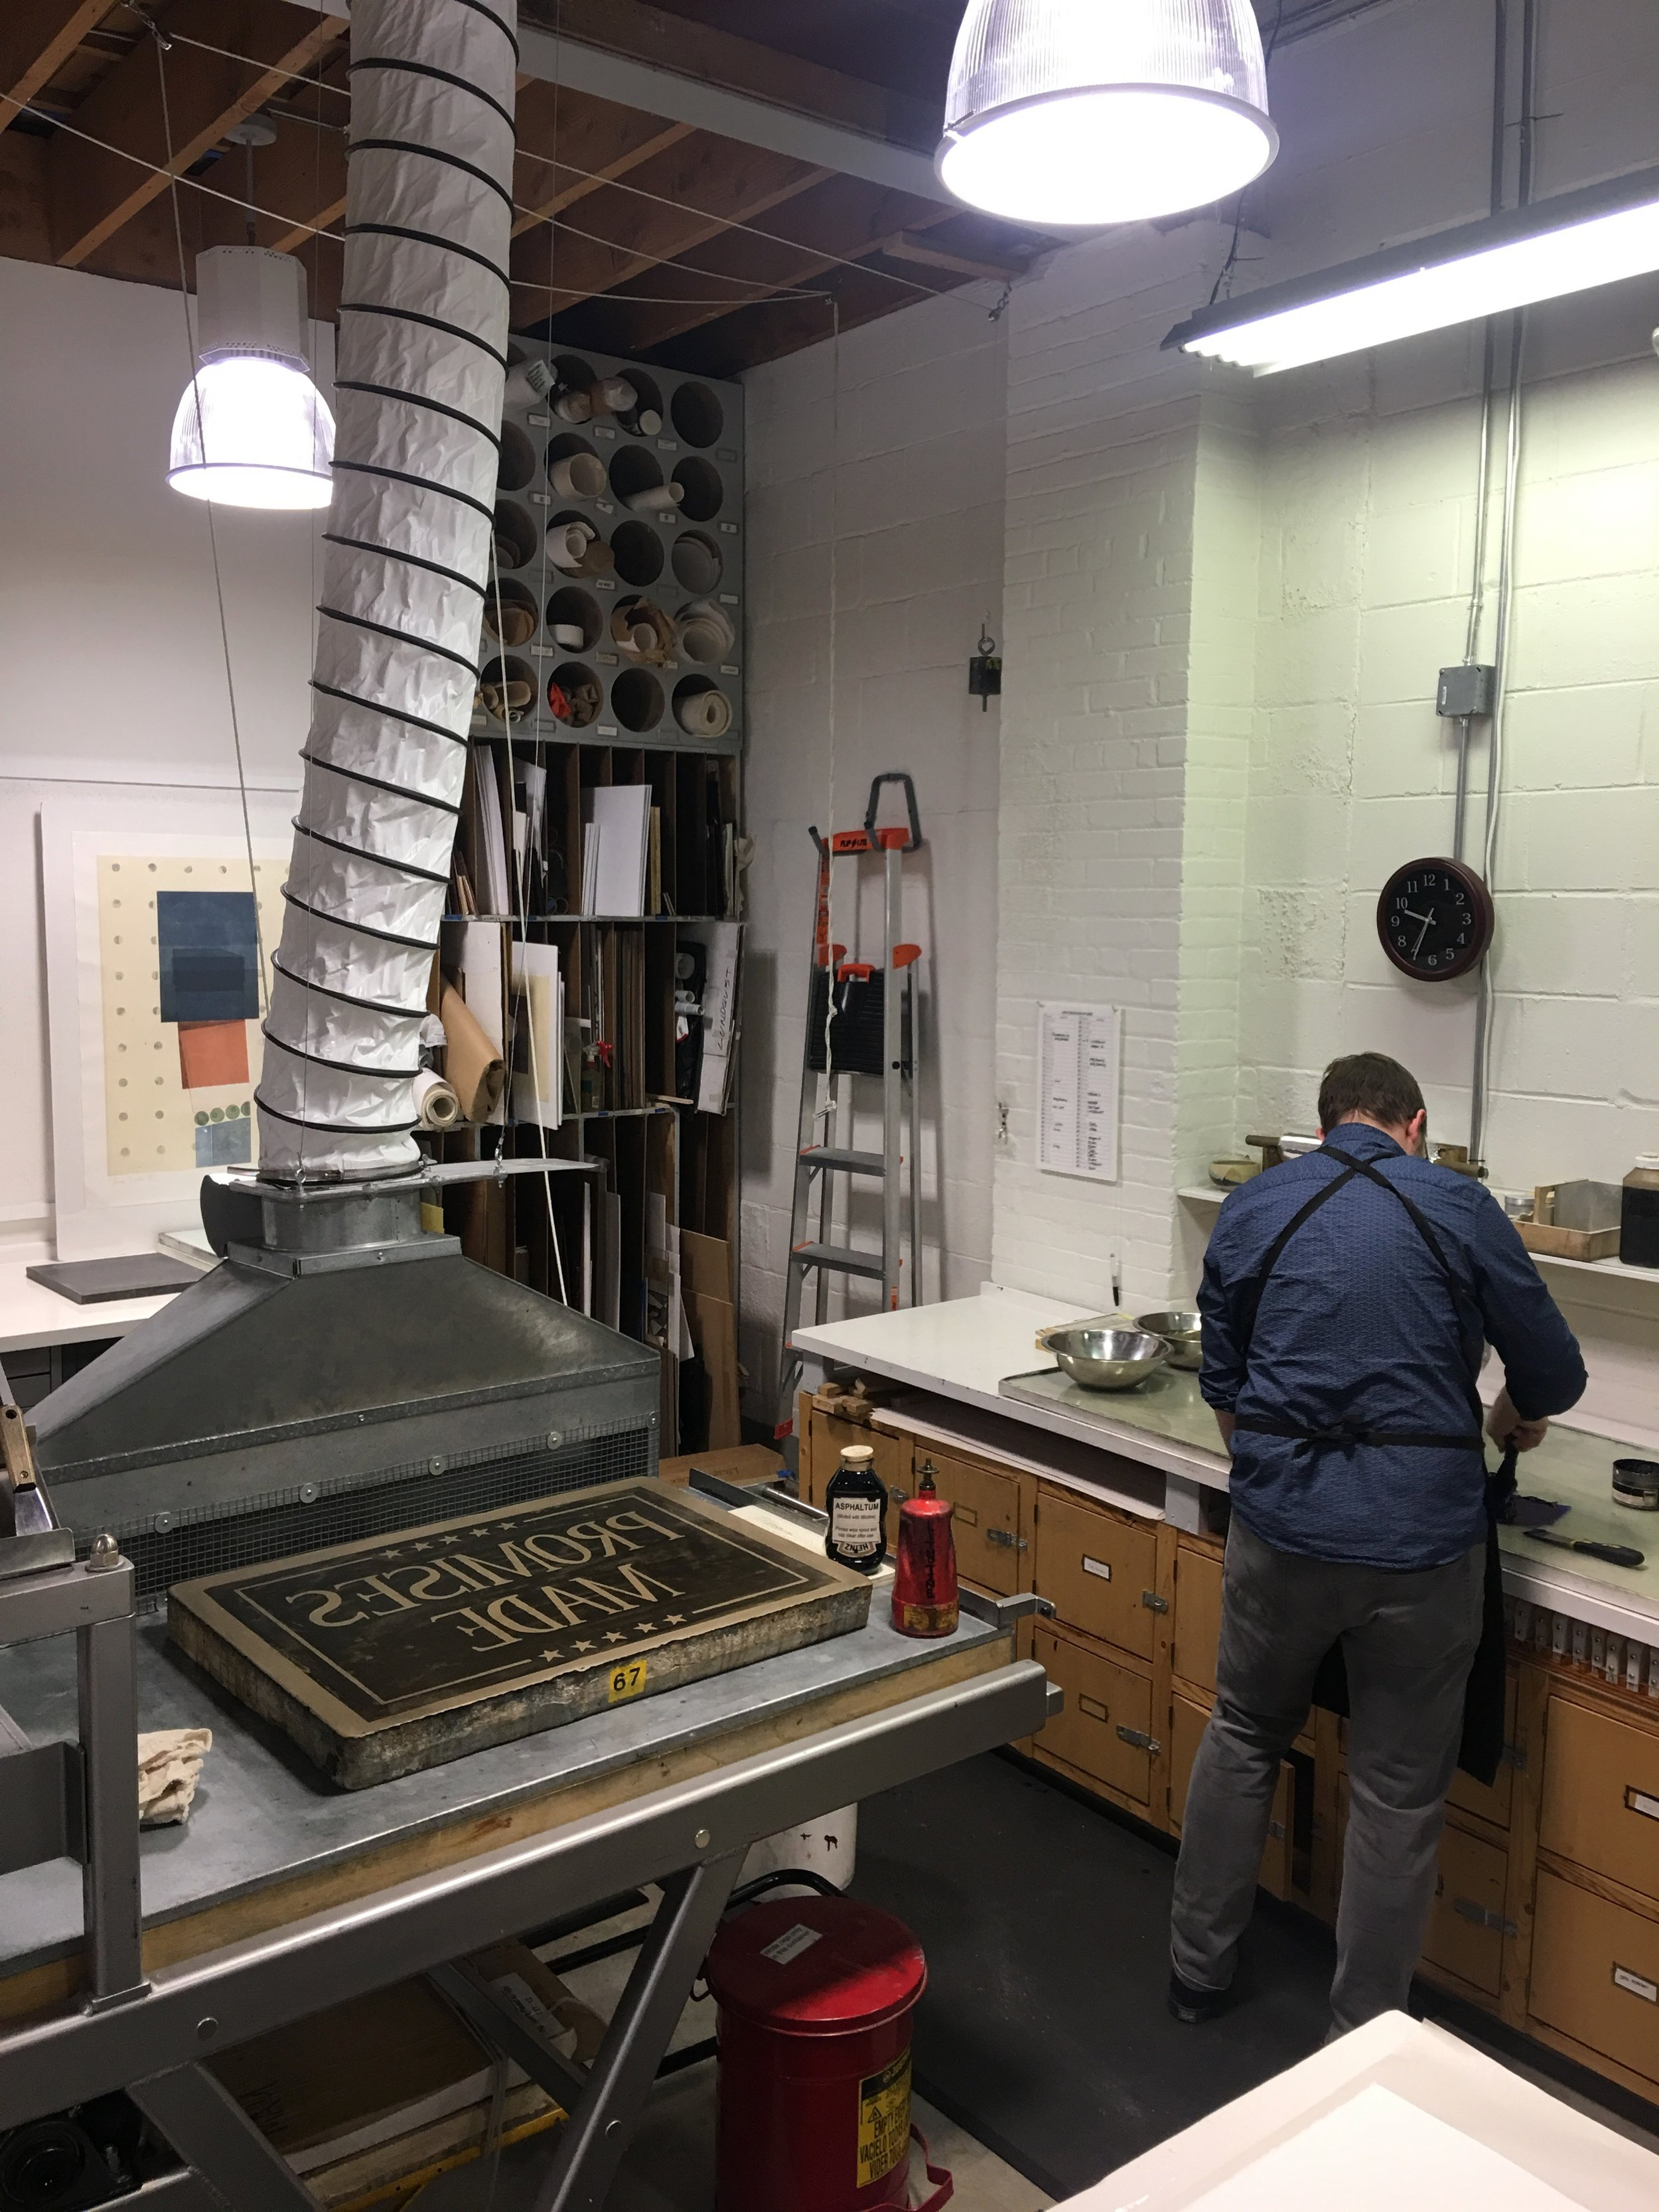 Litho press with retractable ventilation hood